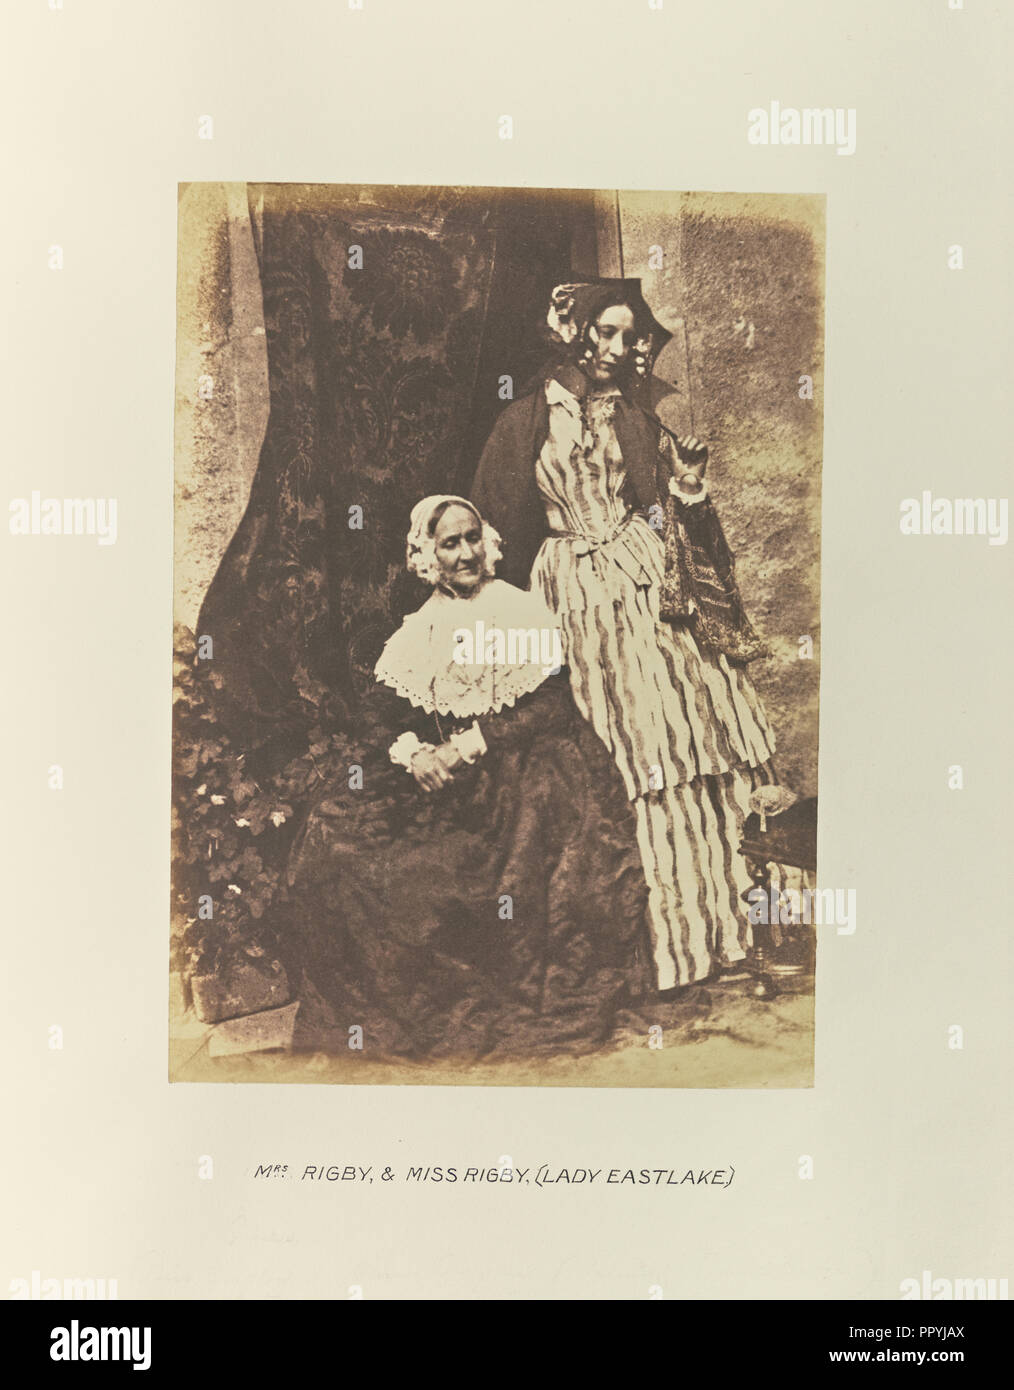 Mrs. Rigby and Miss Rigby, Lady Eastlake, Hill & Adamson, Scottish, active 1843 - 1848, Scotland; 1843 - 1848; Salted paper - Stock Image